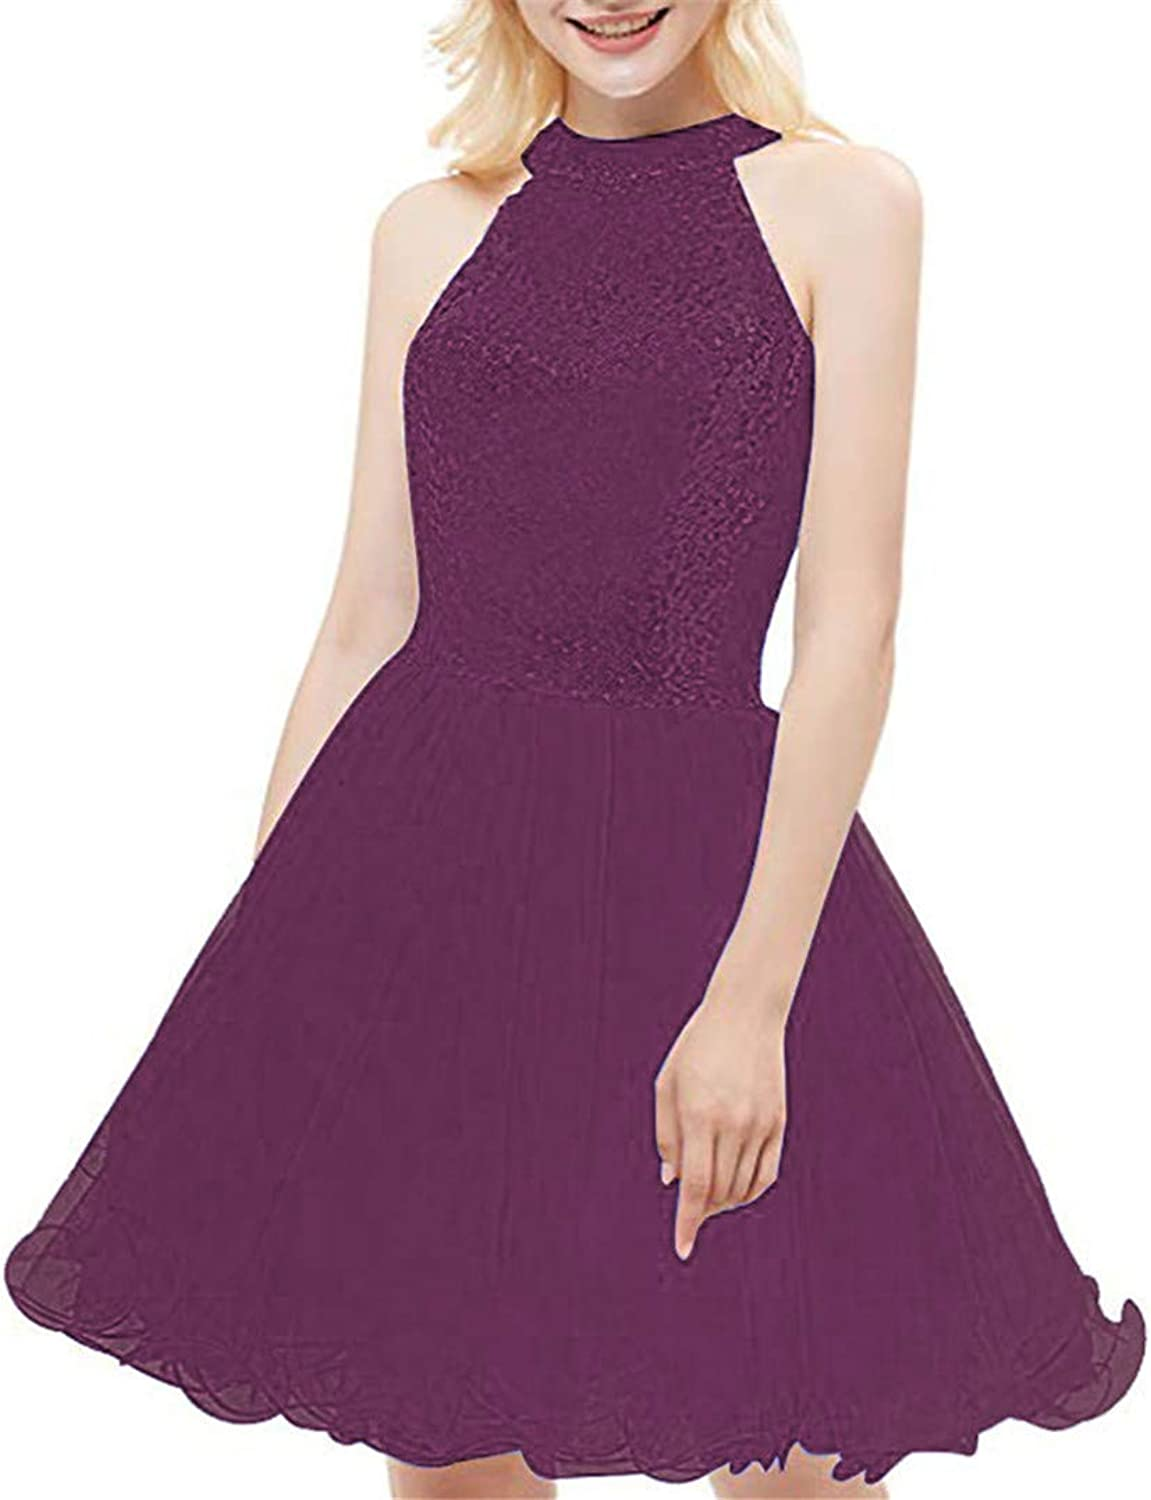 Women's Halter Homecoming Dresses Sequined Short ALine Prom Evening Gowns Tulle